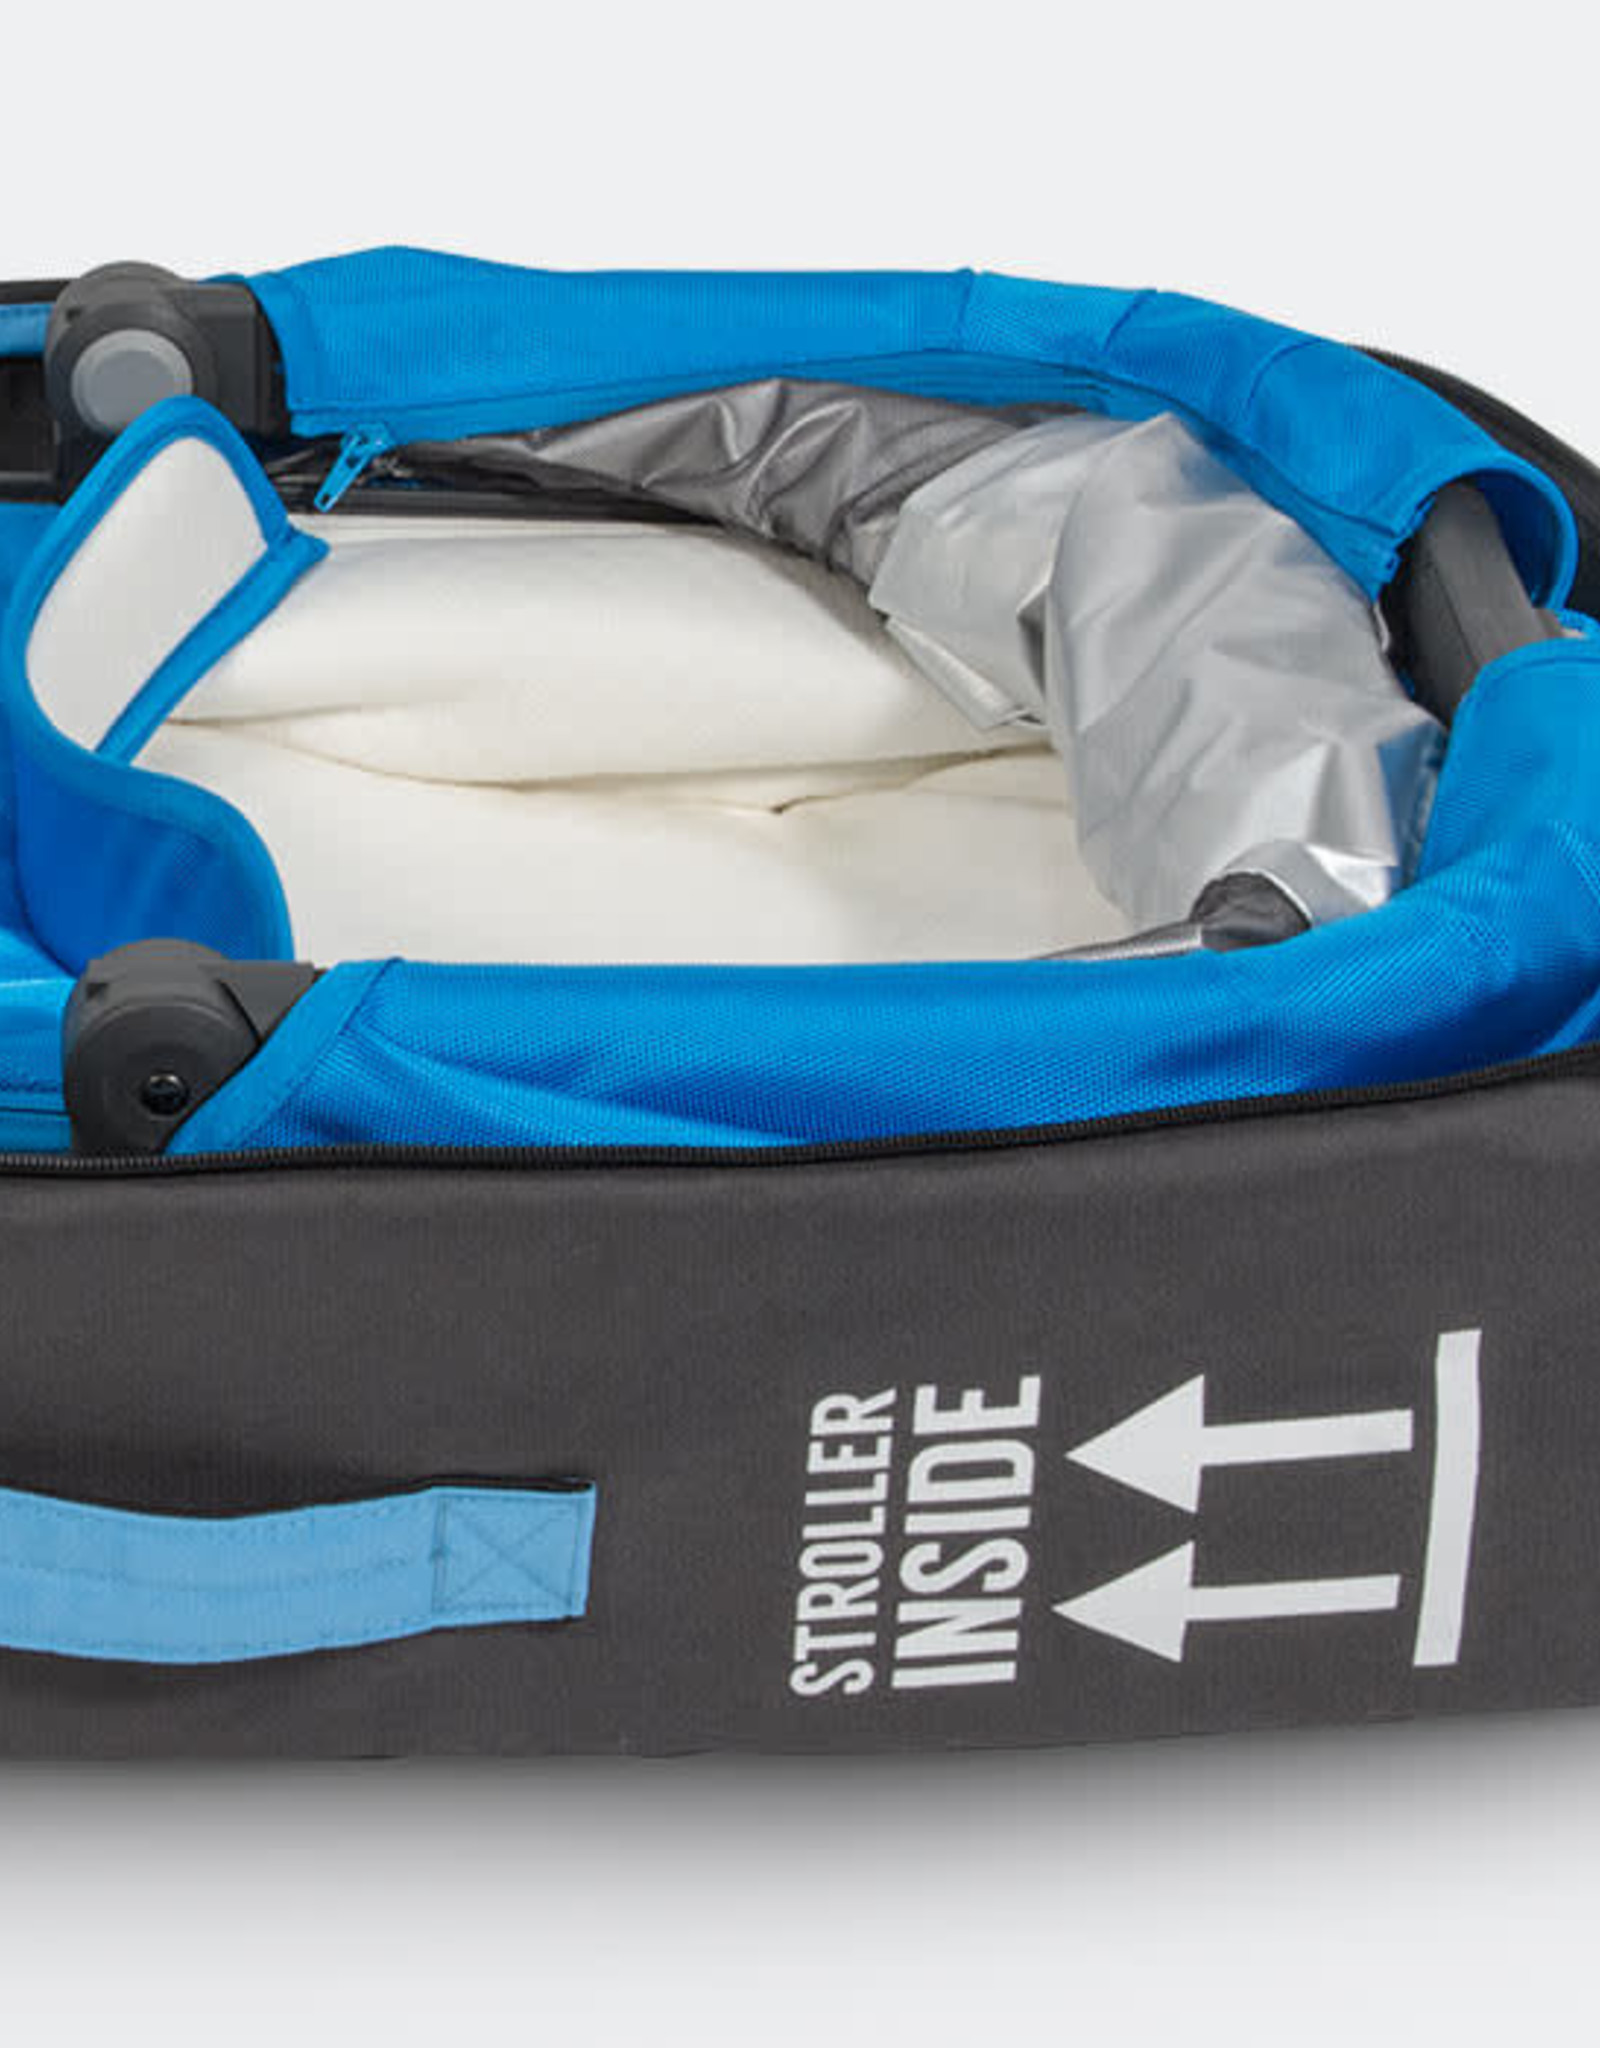 UPPAbaby Uppbaby Travel Bag for RumbleSeat/Bassinet